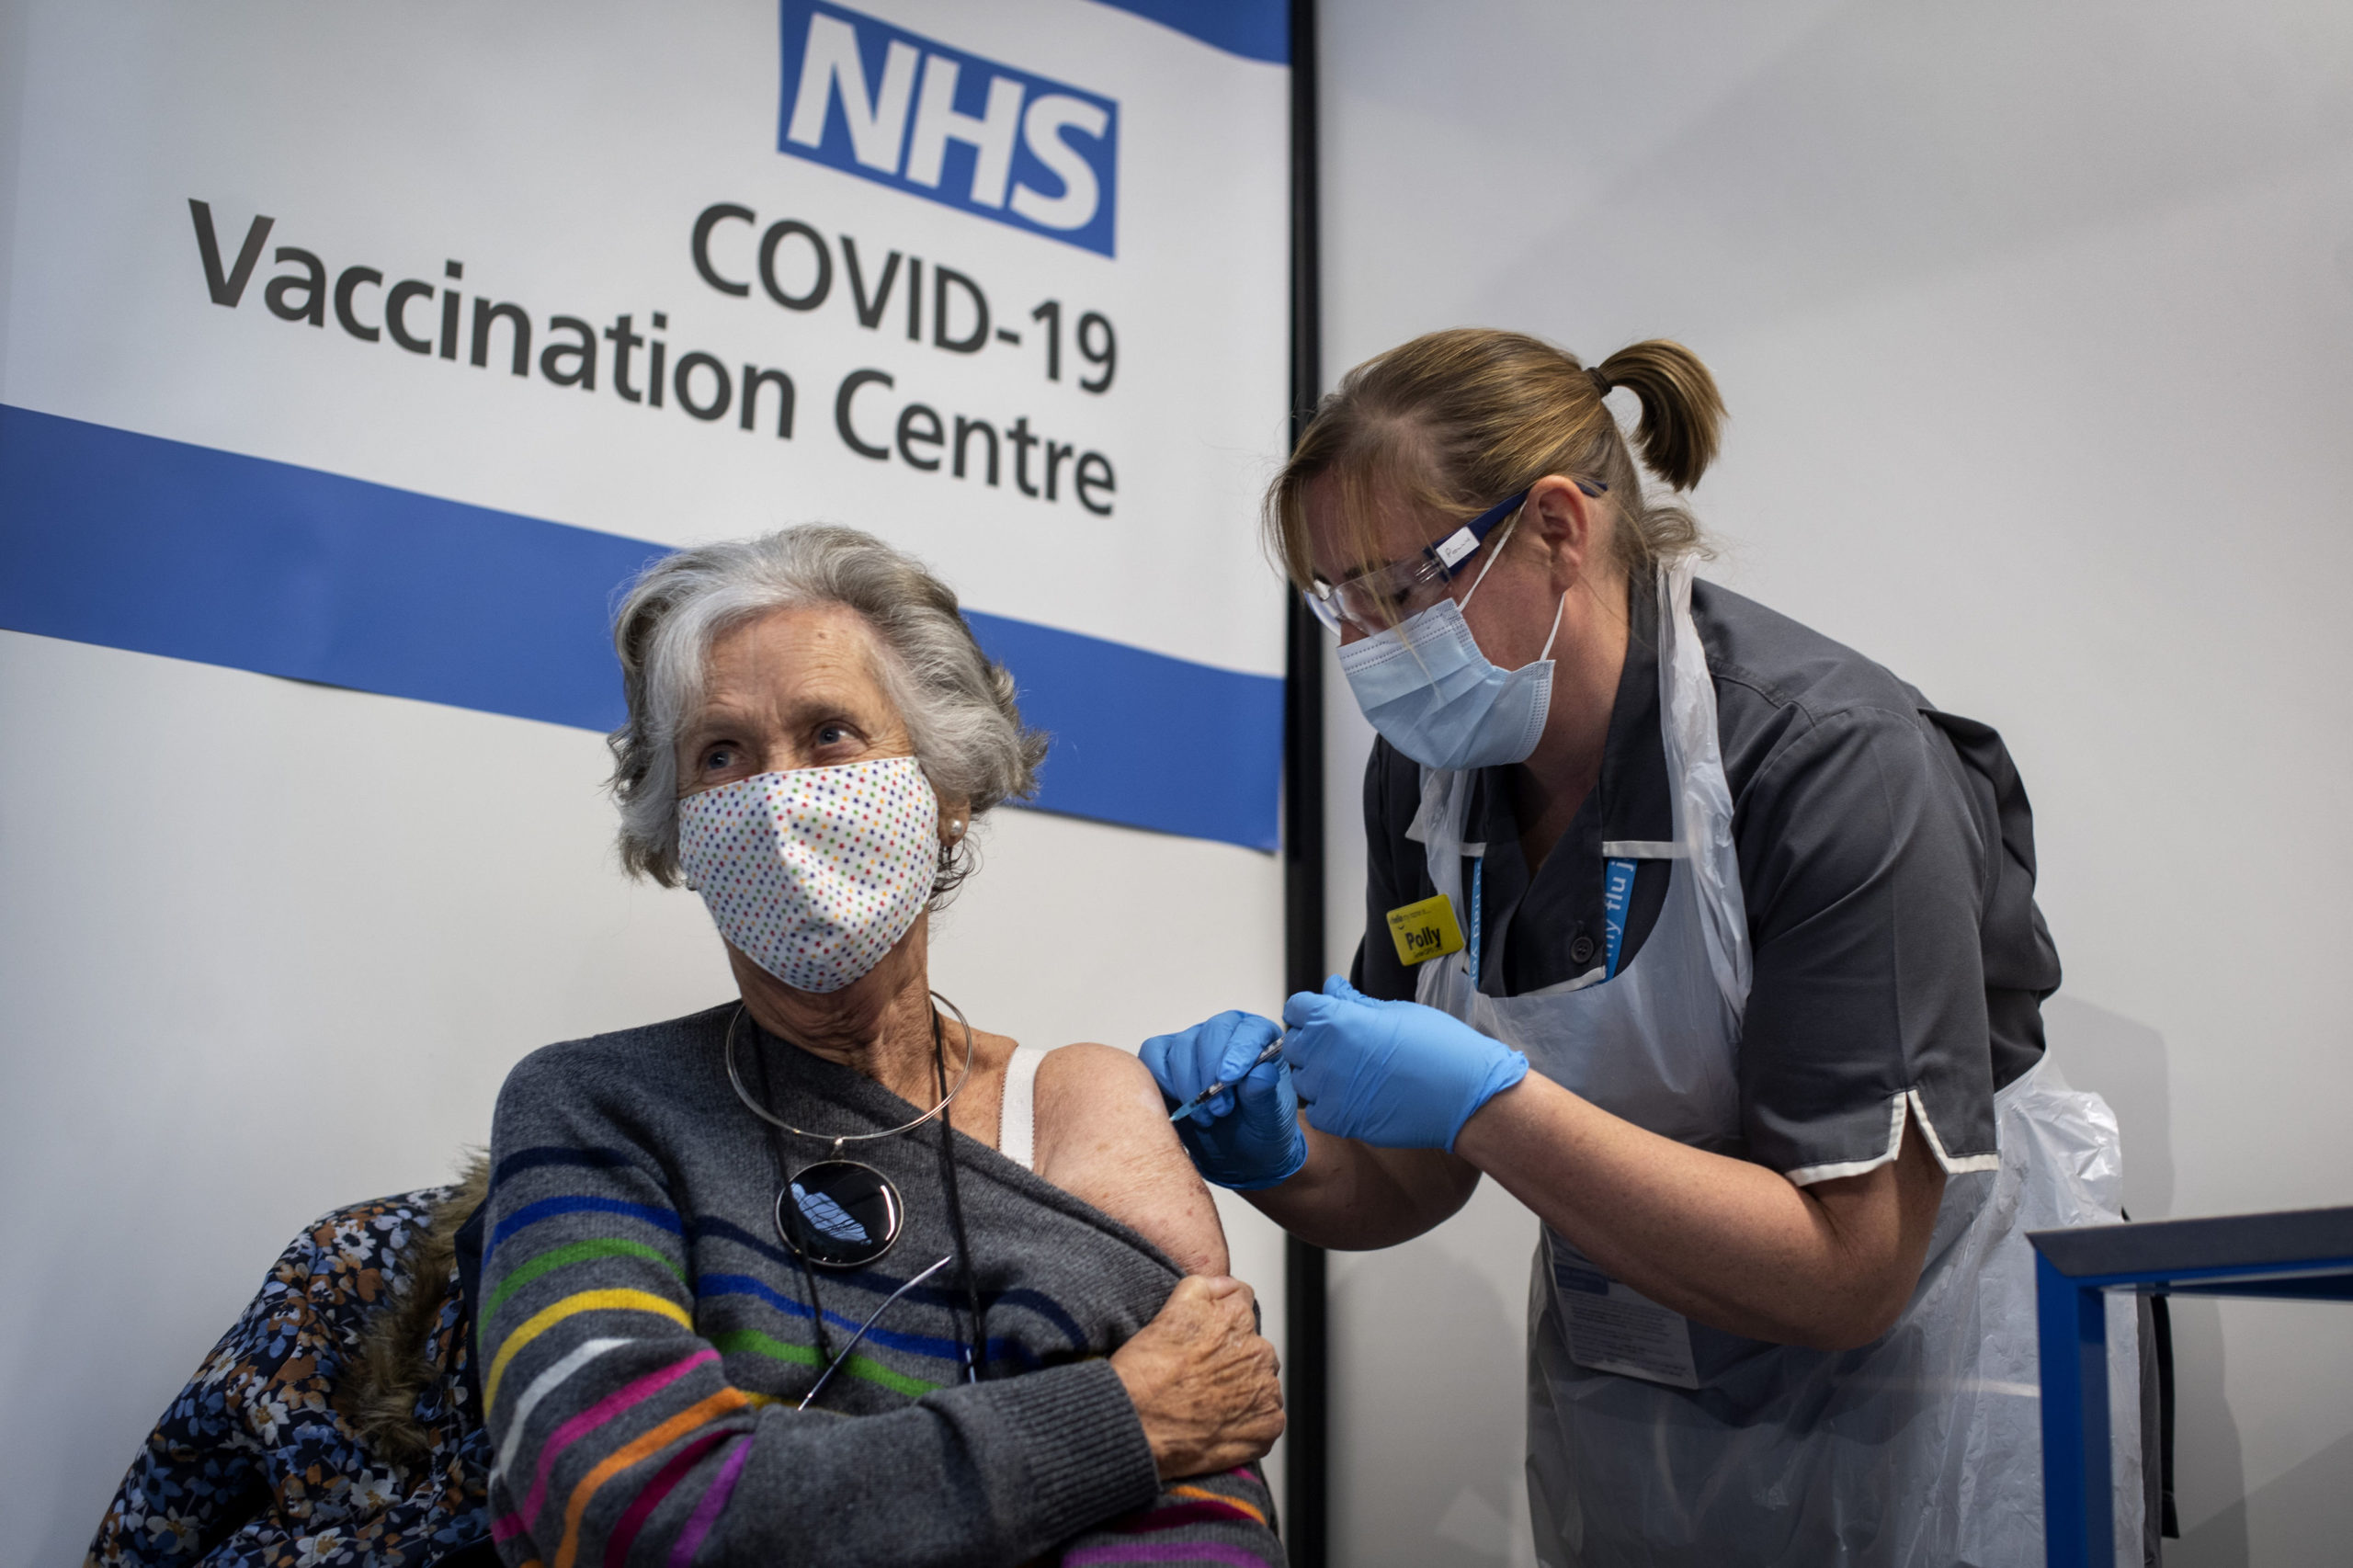 A British woman receives the first of two vaccine doses on Dec. 8 in London. (Victoria Jones/Pool/Getty Images)